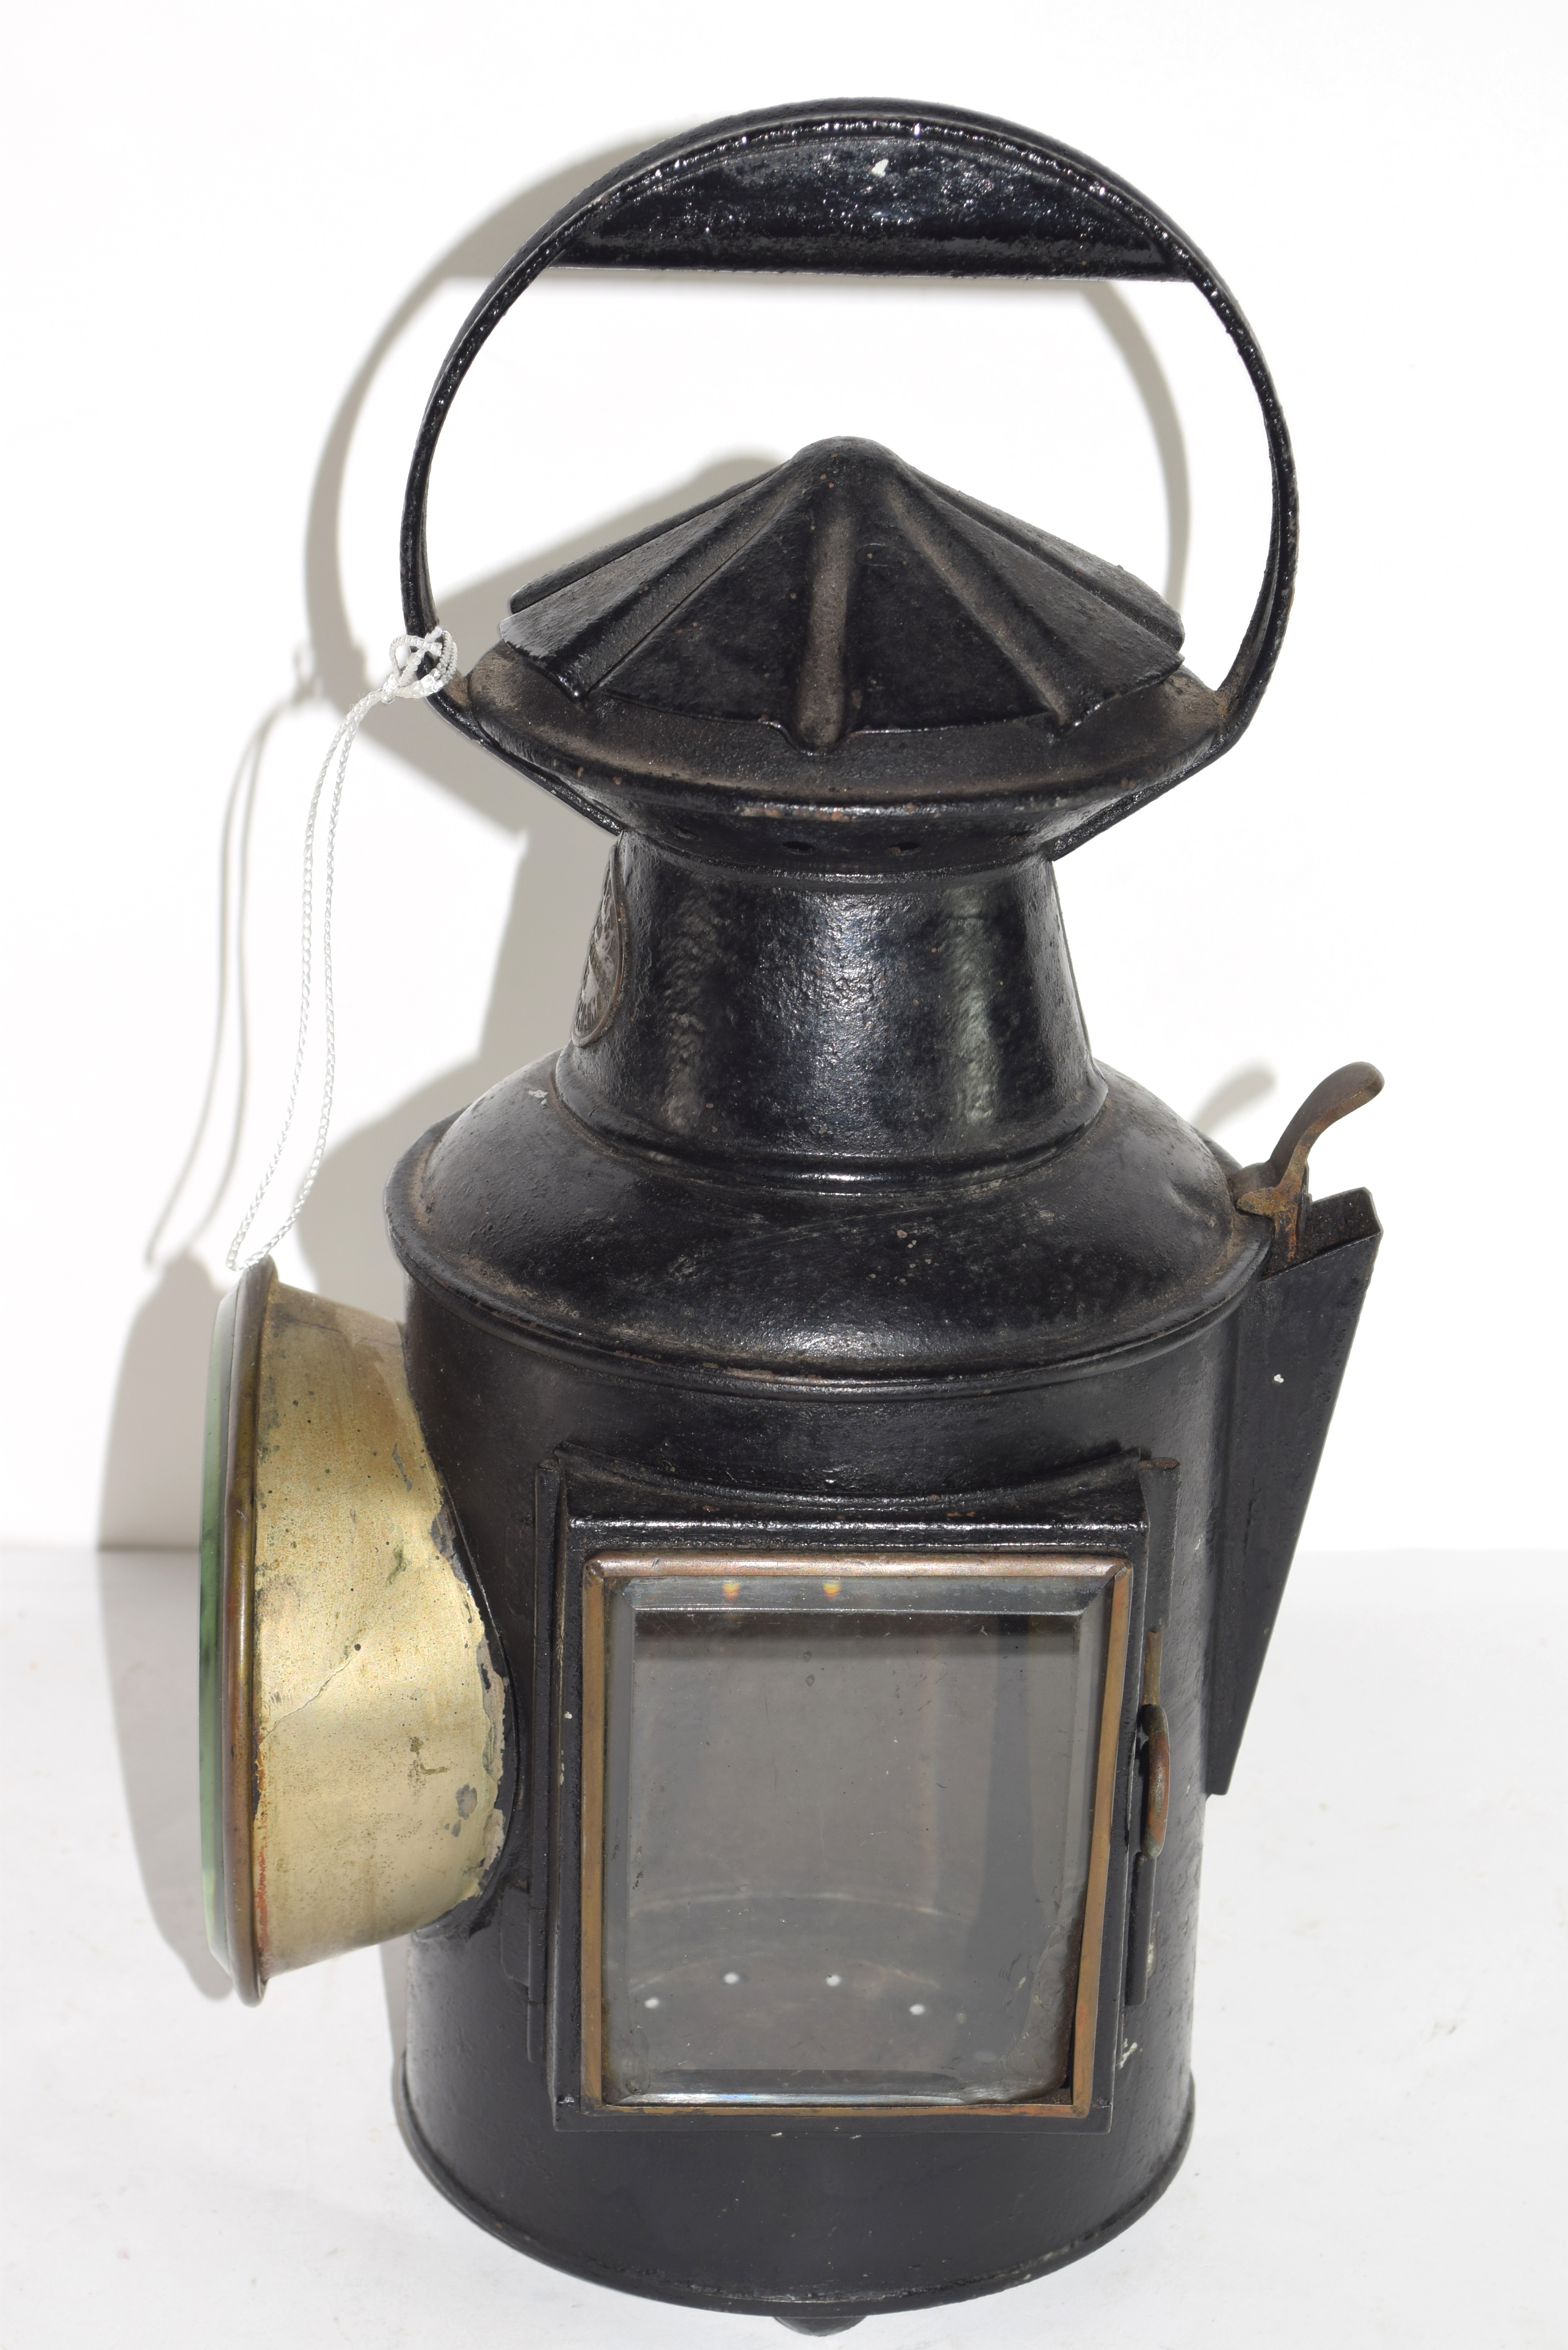 Railway light with stamp for G Polkey, 1903, Birmingham - Image 6 of 6